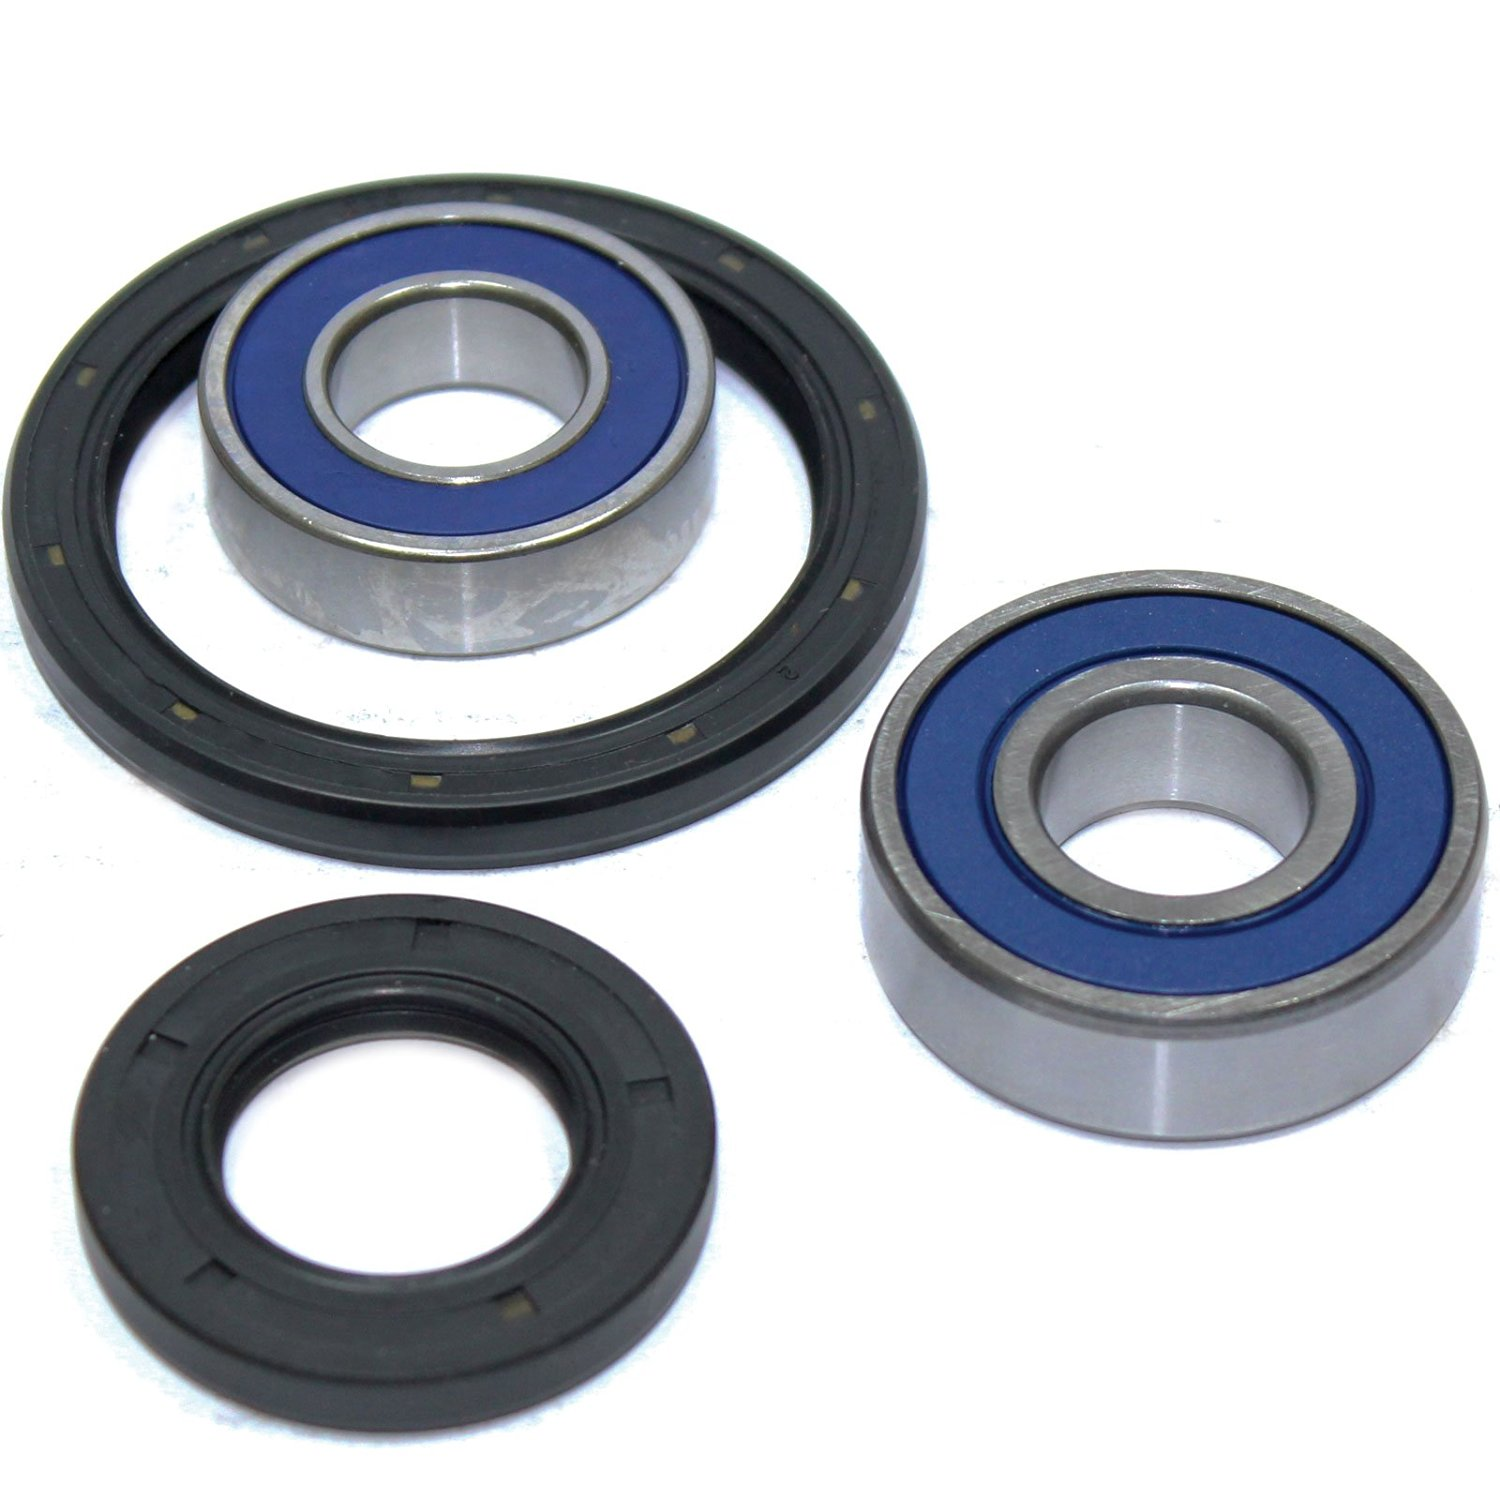 Caltric FRONT WHEEL BALL BEARINGS /& SEALS KIT Fits YAMAHA 225 YTM225 YTM-225 1983 1984 1985 1986